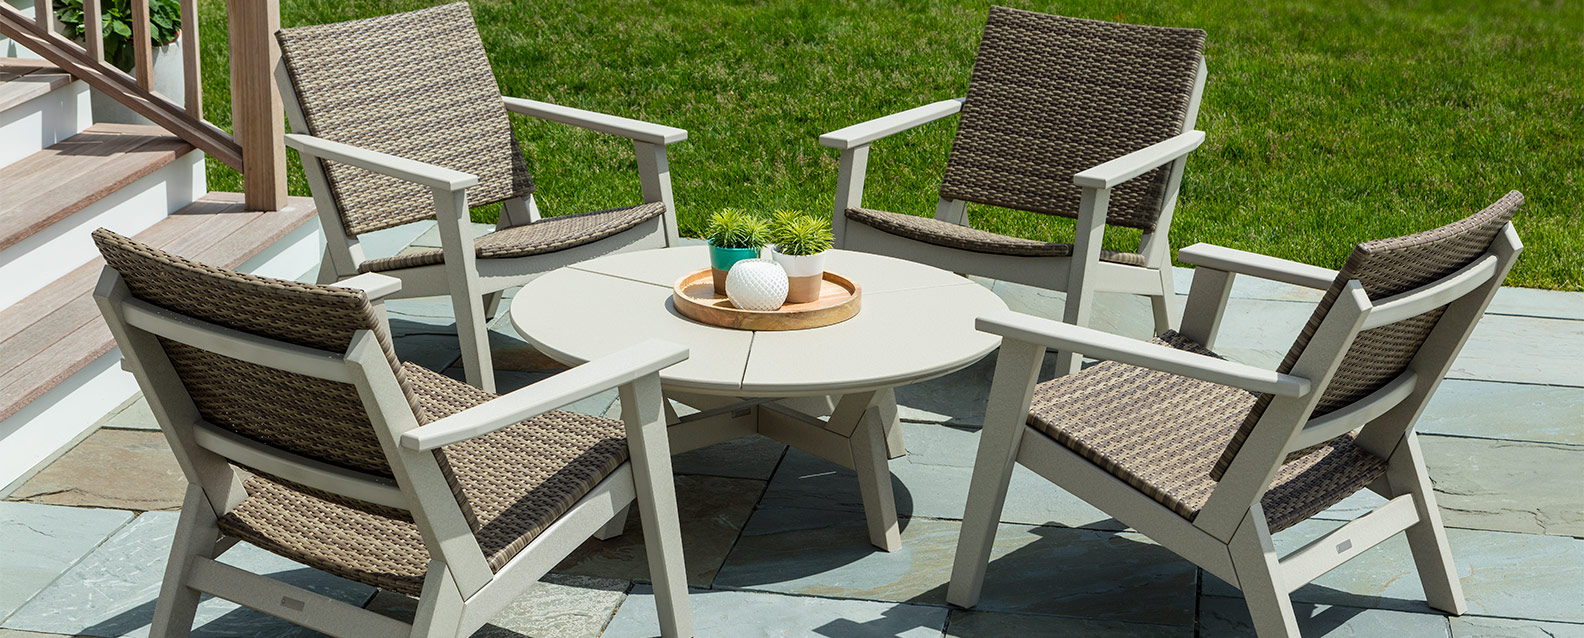 Seaside Casual Mad Fusion Chat Summer House Patio